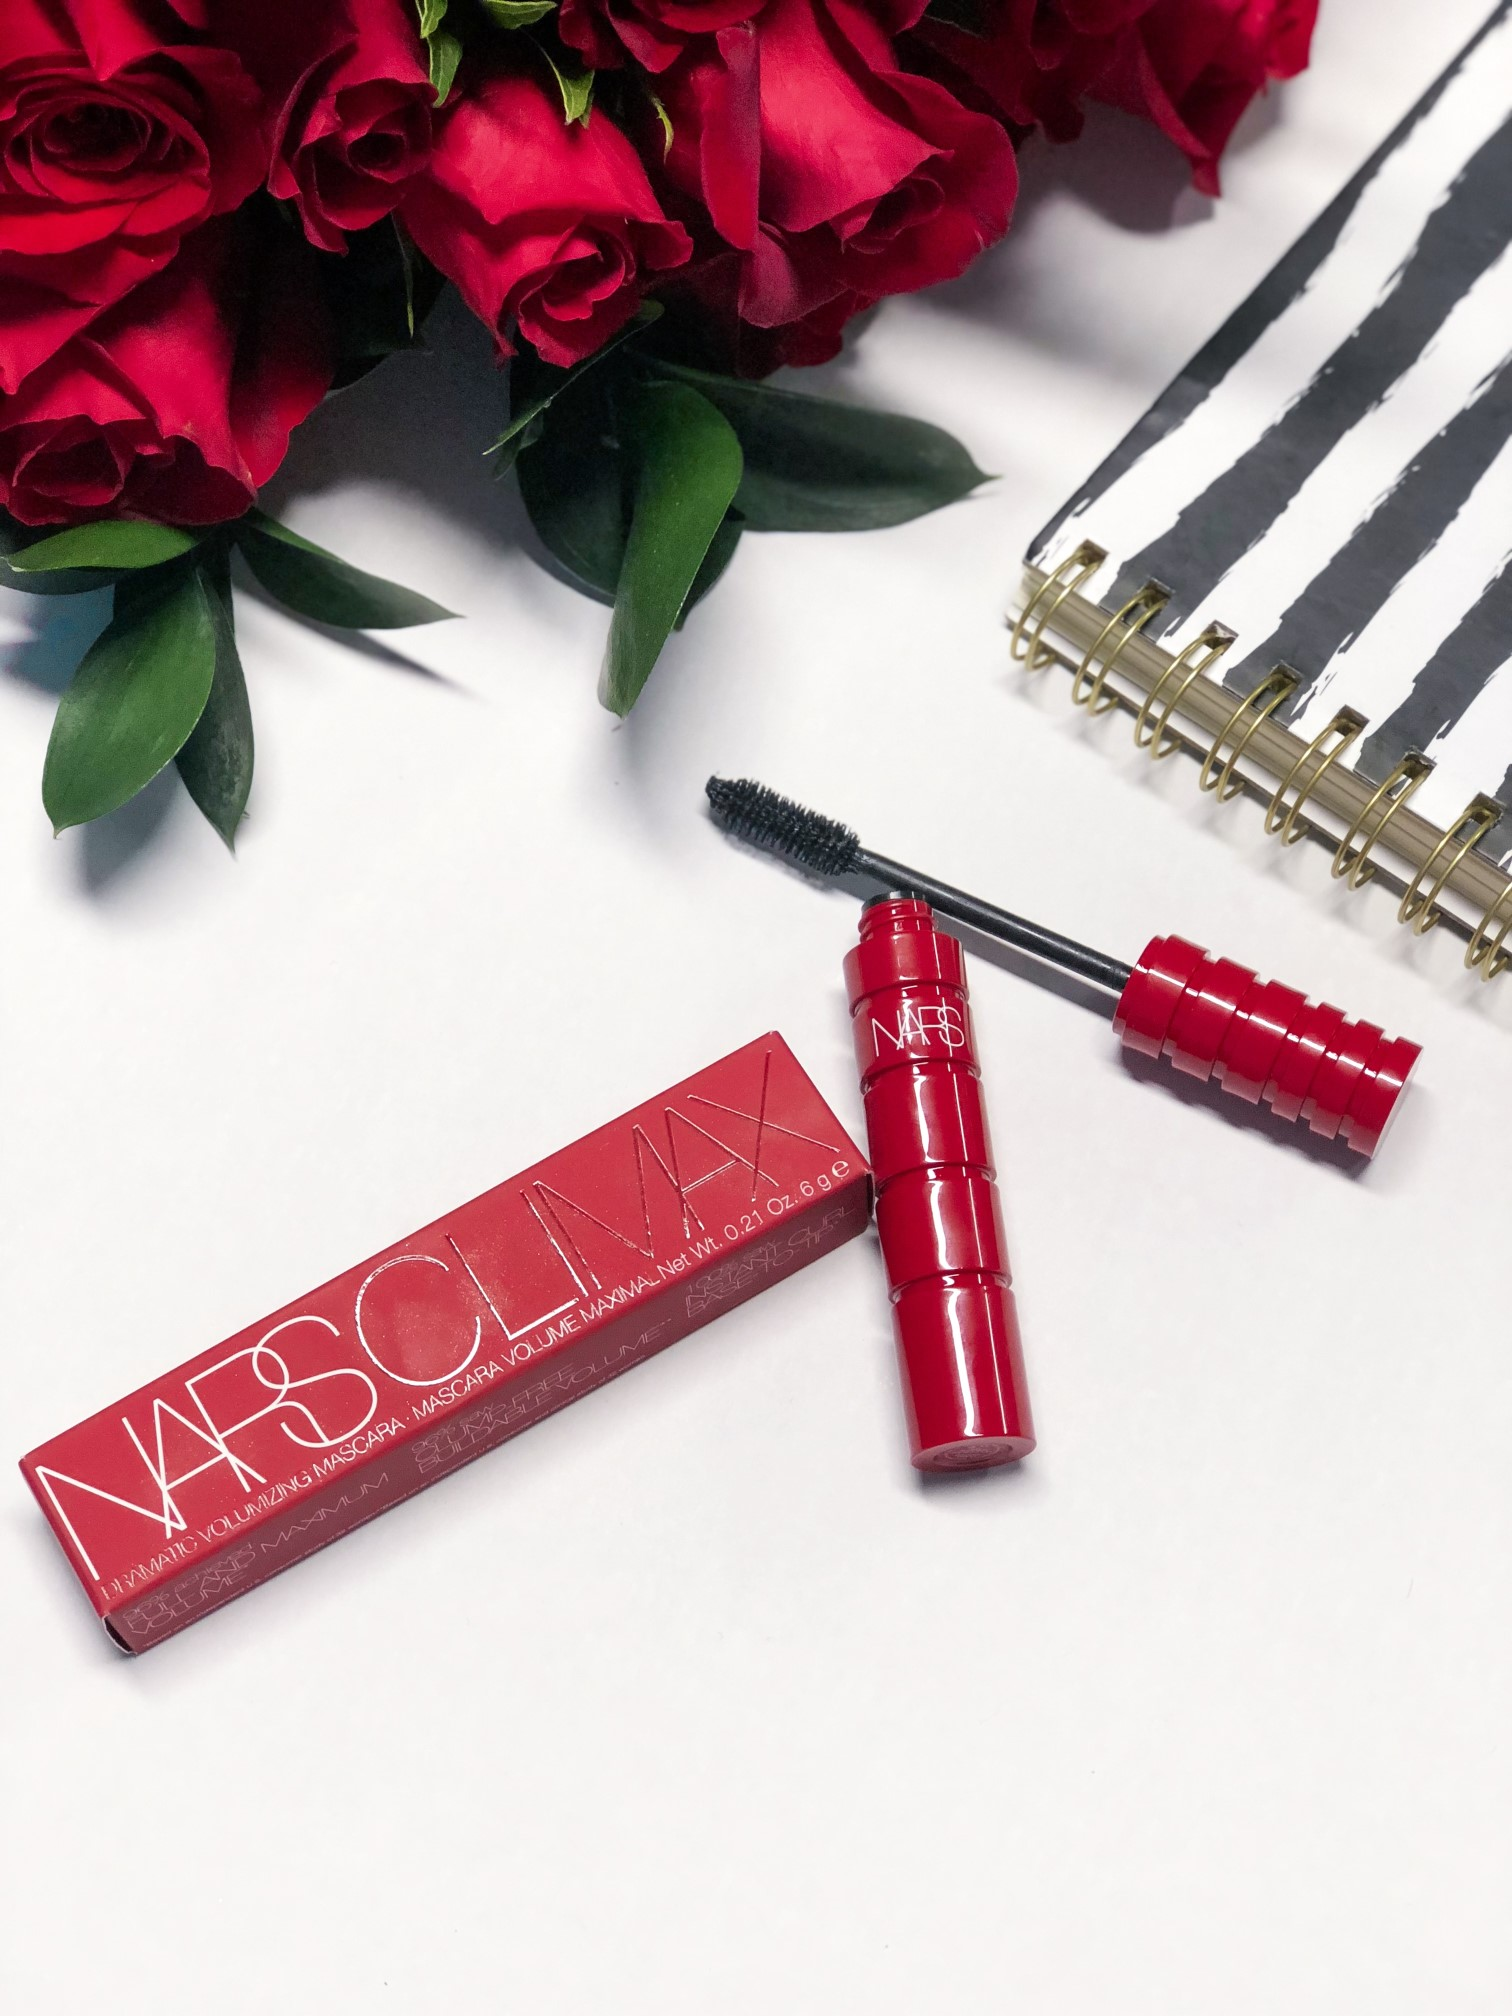 nars climax mascara impressions review